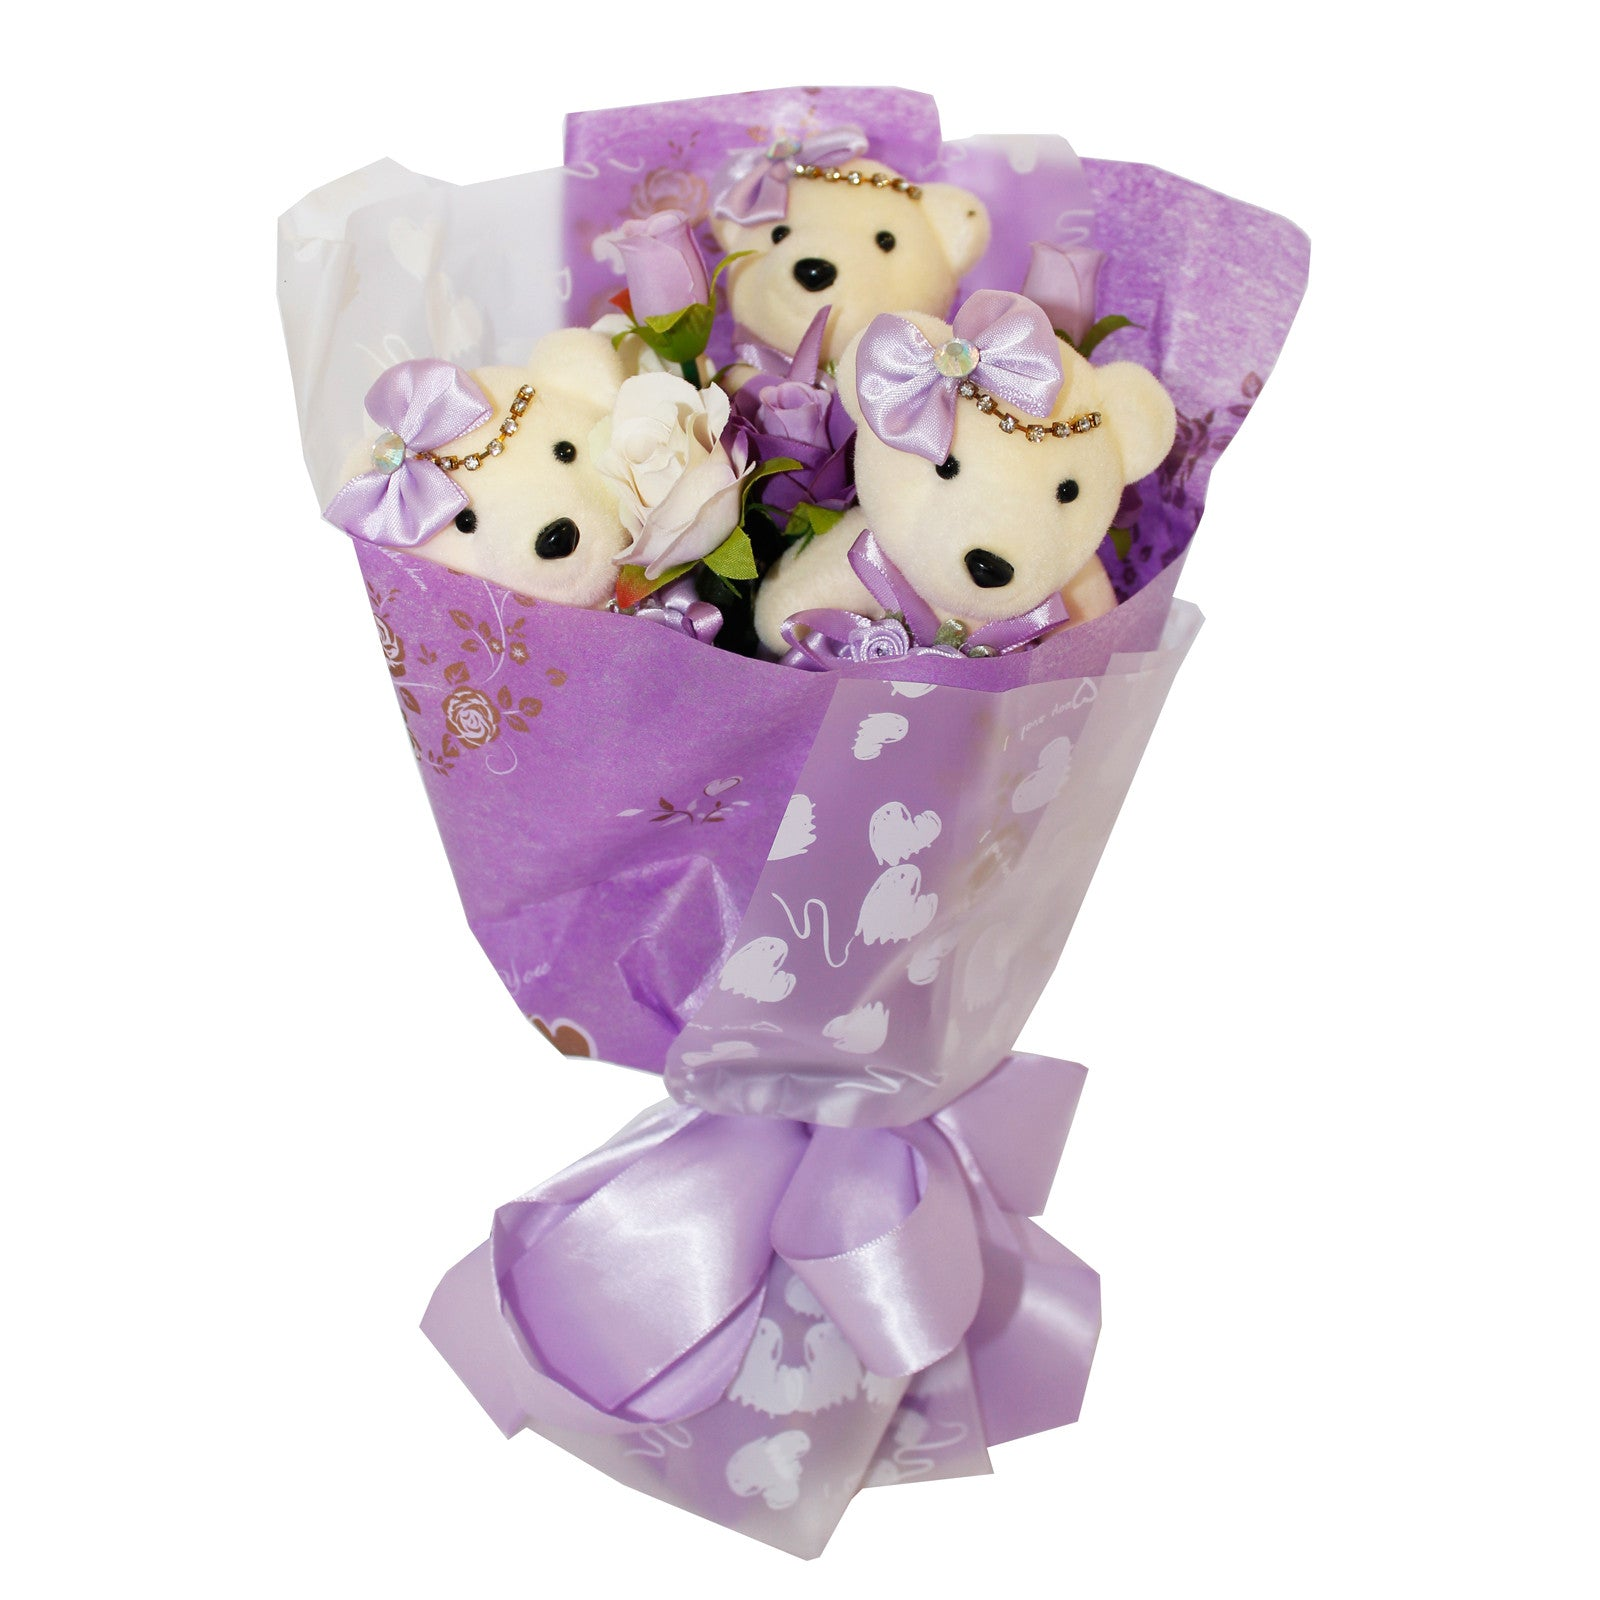 Special 3 bear flower bouquet with rhinestones purple design special 3 bear flower bouquet with rhinestones purple design izmirmasajfo